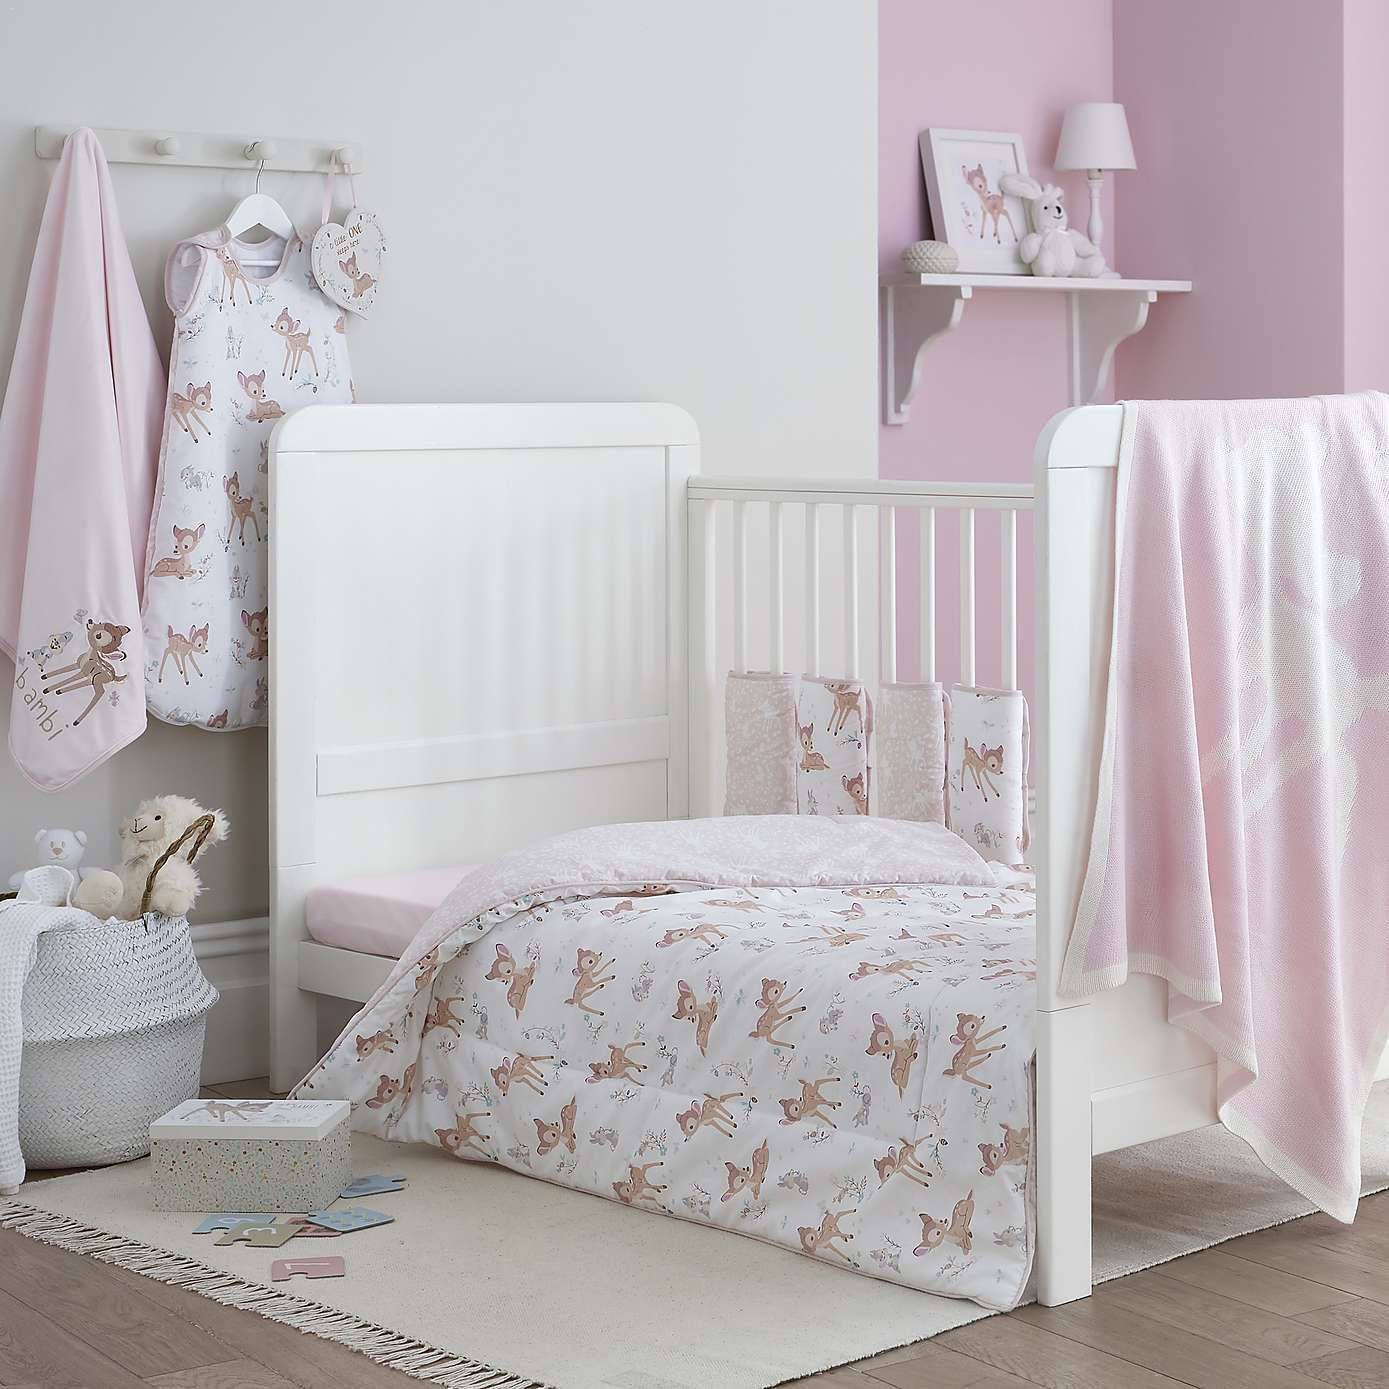 Bambi Duvet Cover and Pillowcase Set